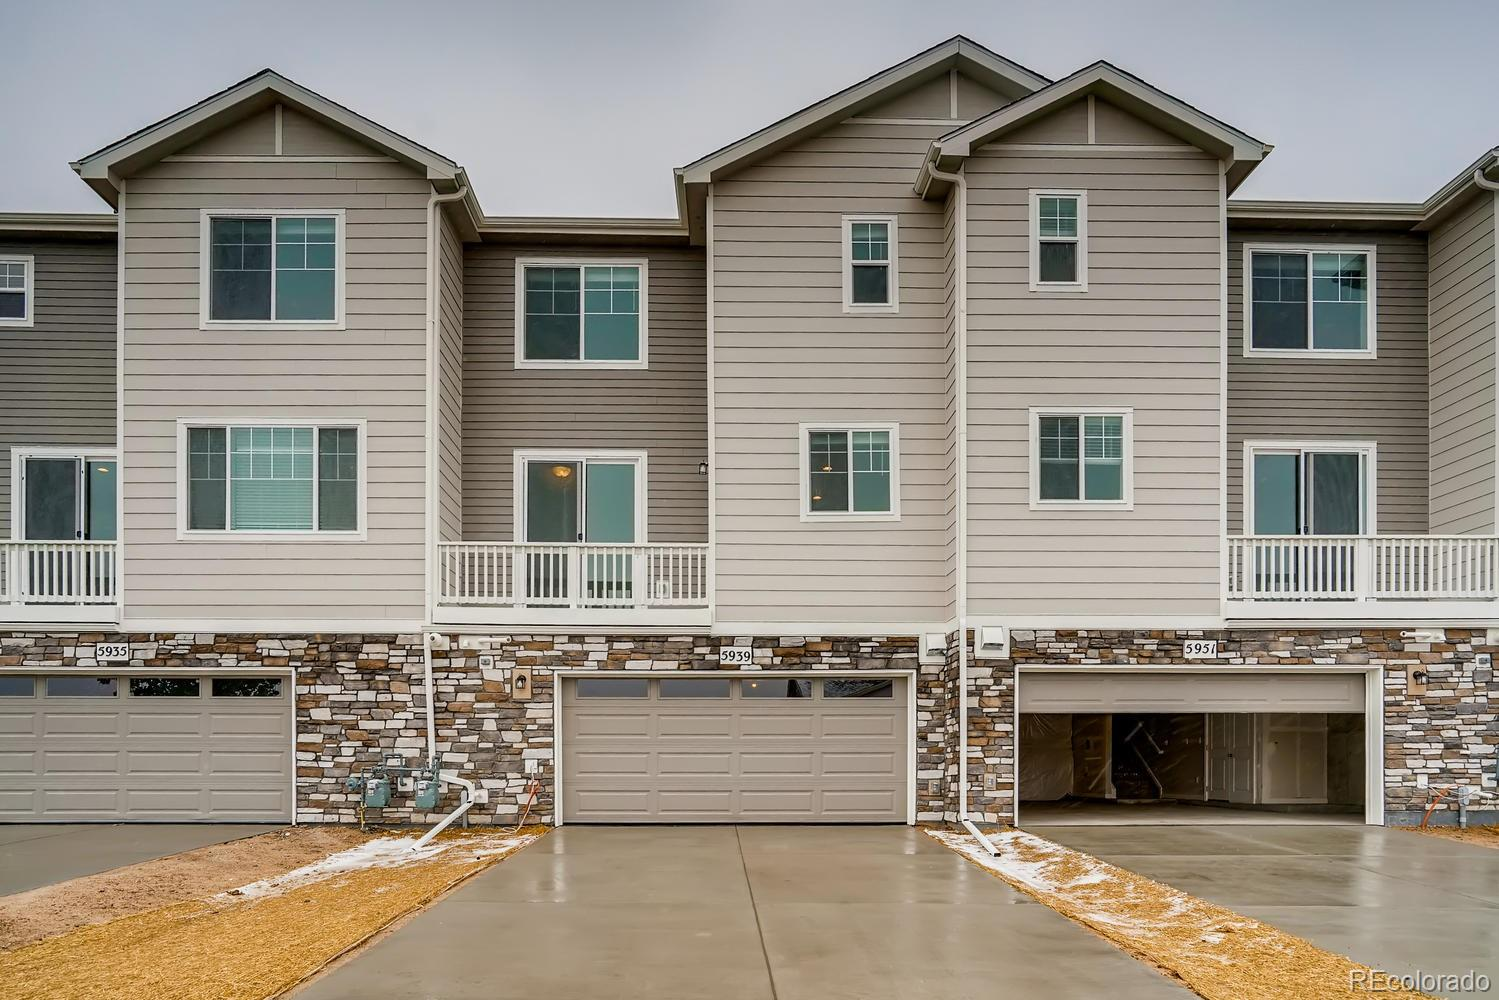 """Luxury Townhome in the heart of Castlerock with an April/May 2021 completion! Photos are from similar home.  The beautiful Berkshire is a 2 bed, 2.5 bath, with oversized attached 2 car garage. Kitchen includes stainless steel appliances, upgraded quartz countertops, upgraded cabinets, gas range, dishwasher, and built-in microwave.  Open floorplan with spacious living area, kitchen island, dining space, and is perfect for entertaining.  Wood laminate flooring has been upgraded and extended throughout entire main level.  Both bedrooms have en-suite bathrooms providing privacy and making it a great roommate layout.  Upstairs laundry conveniently located near both bedrooms.  Includes energy-efficient furnace, A/C, tankless water heater, and 2"""" white blinds. Right outside your back door, you can enjoy miles of walking trails through the beautiful scenery of the nature filled canyons. Don't miss out on living at The Enclave, just moments away from major highways, shopping, dining, award winning Douglas County Schools, and multiple outdoor activities!"""